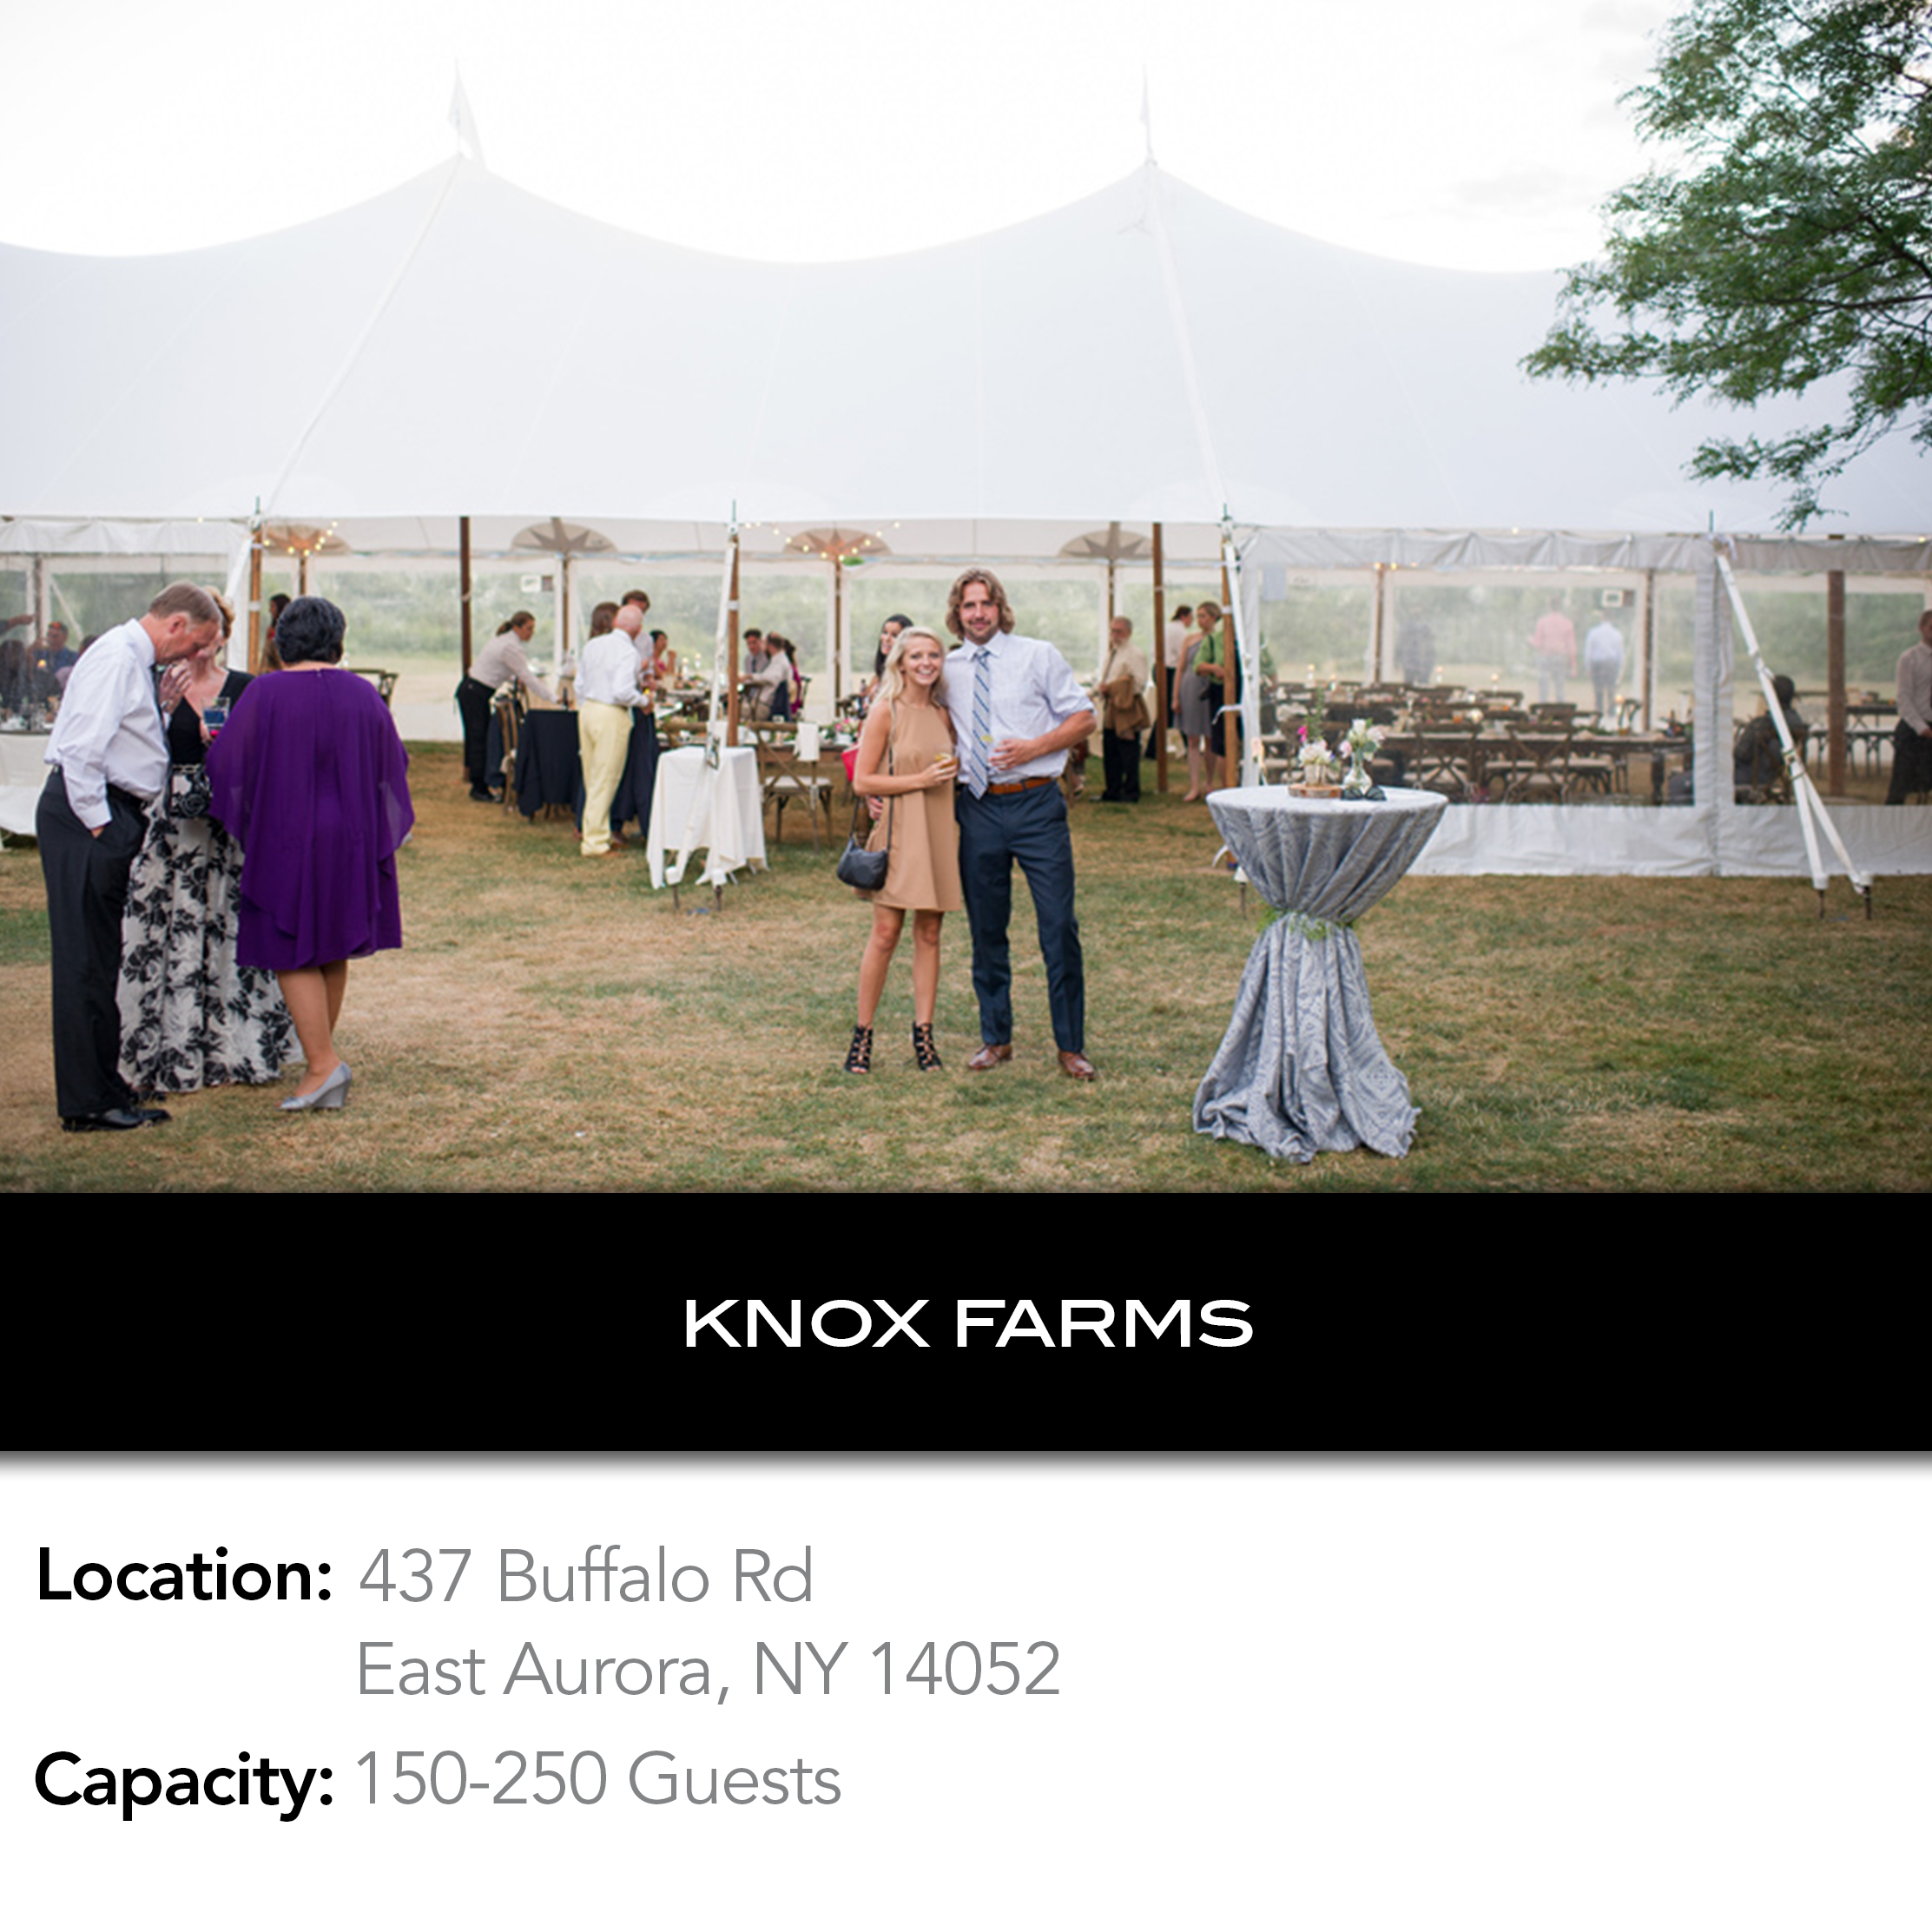 Knox Farms